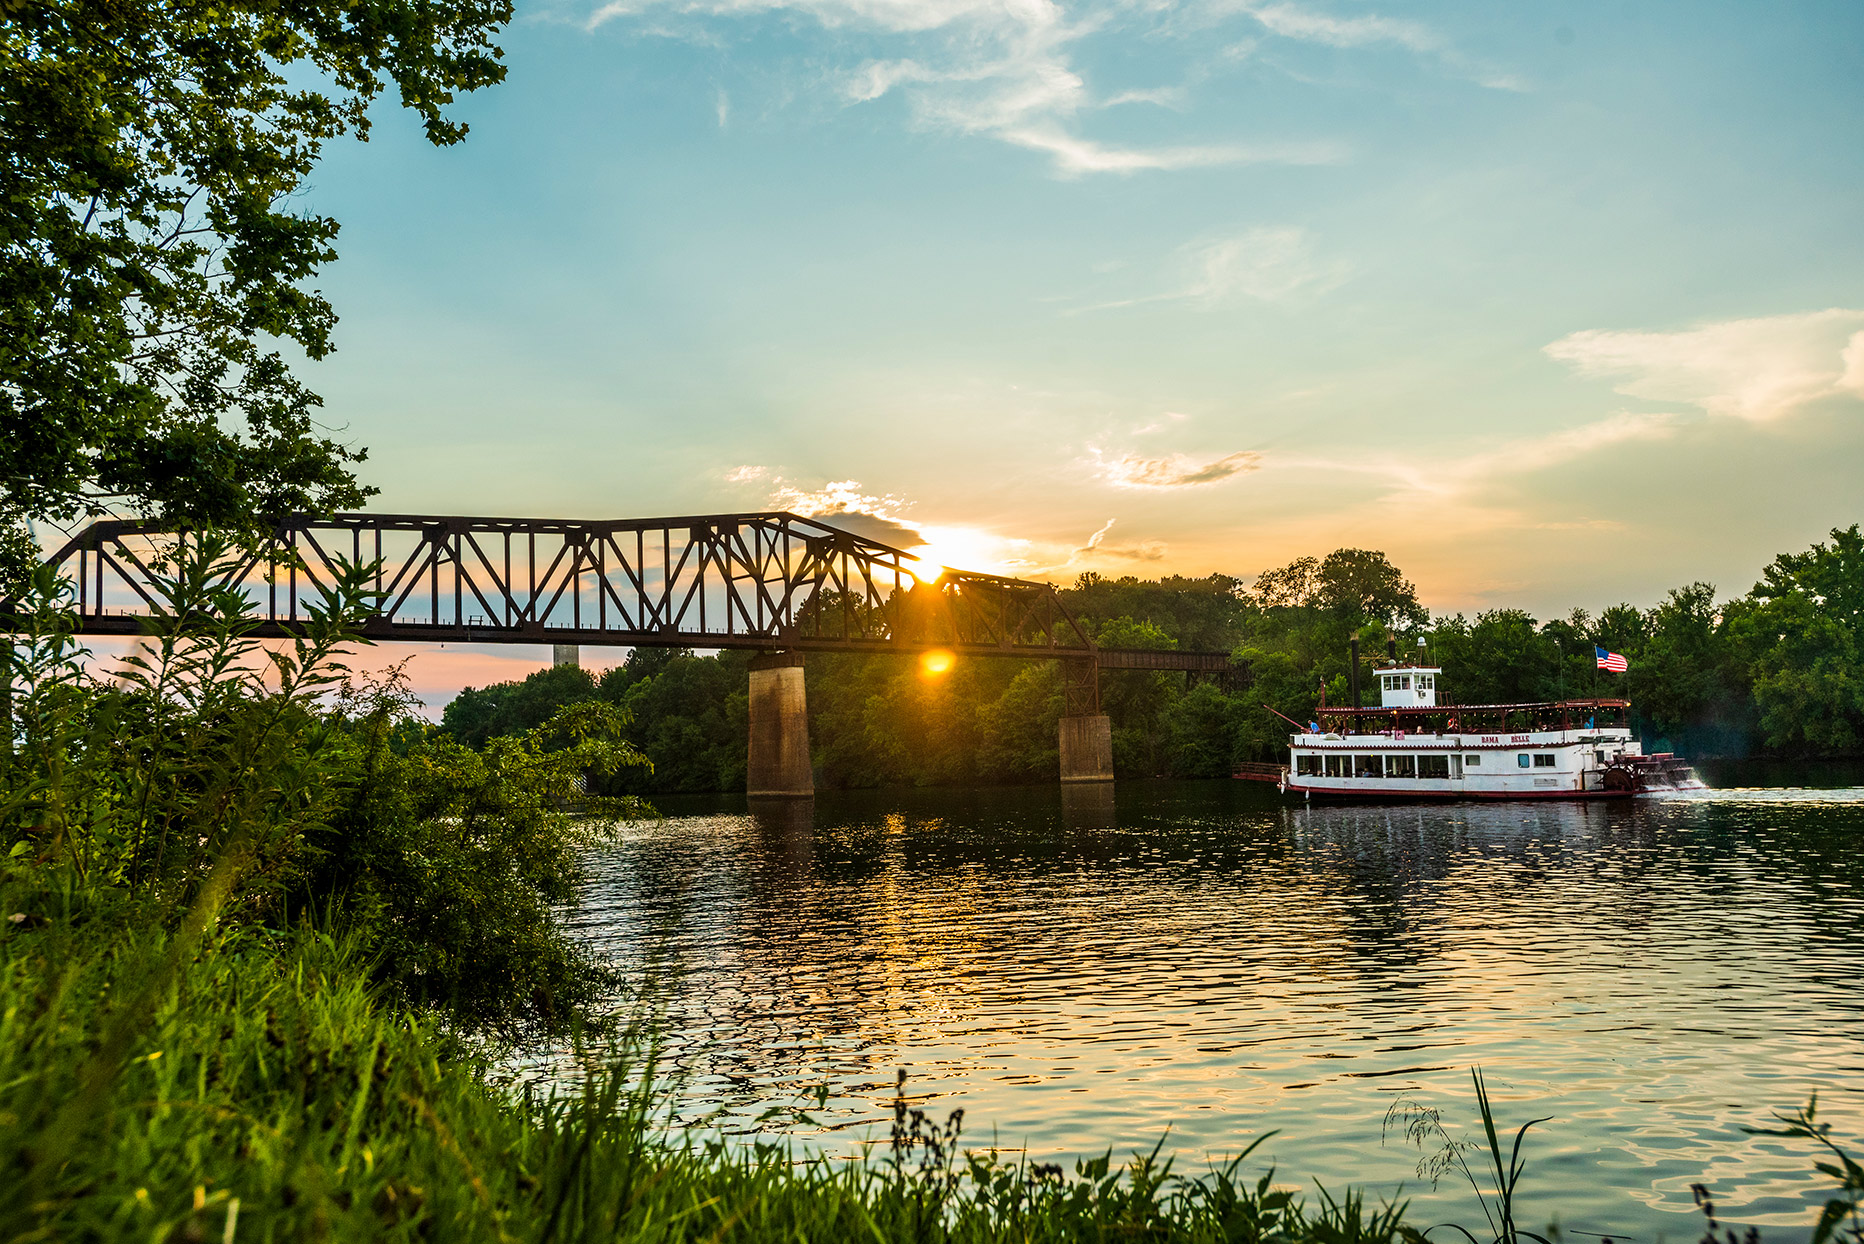 steamboat traveling on river in Tuscaloosa, Alabama